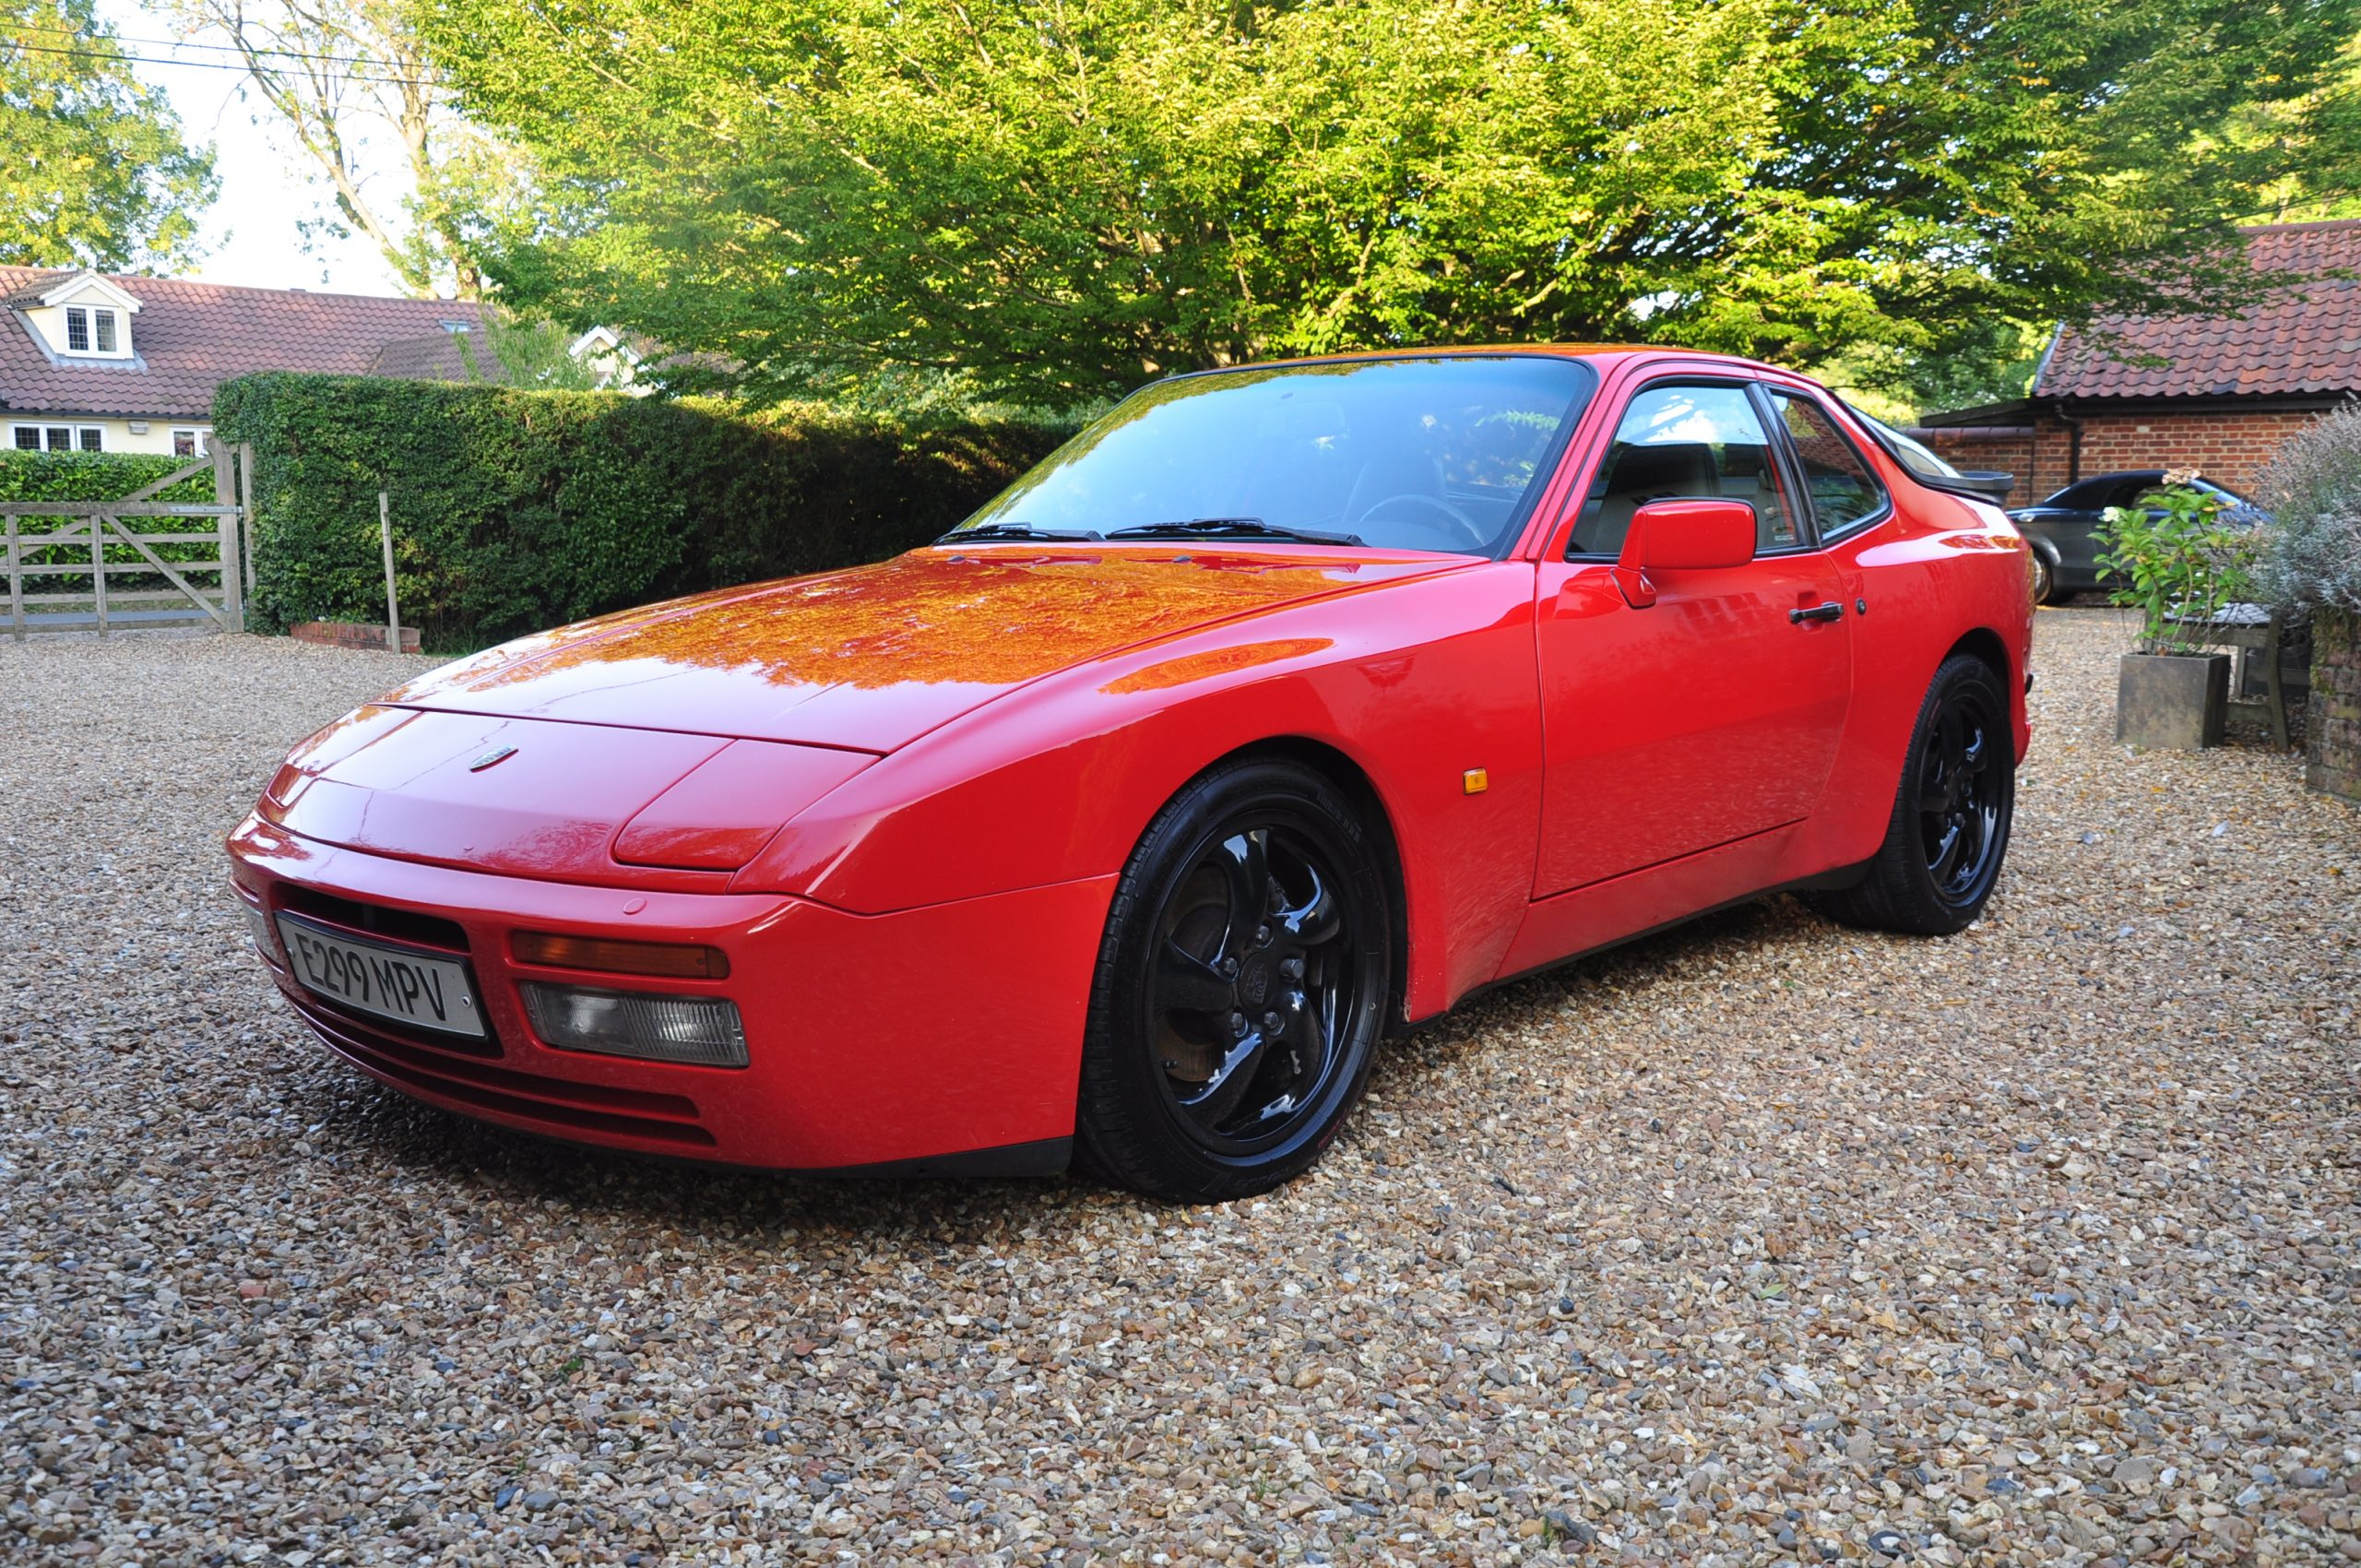 1988 Porsche 944 Turbo (LHD) – NOW SOLD full